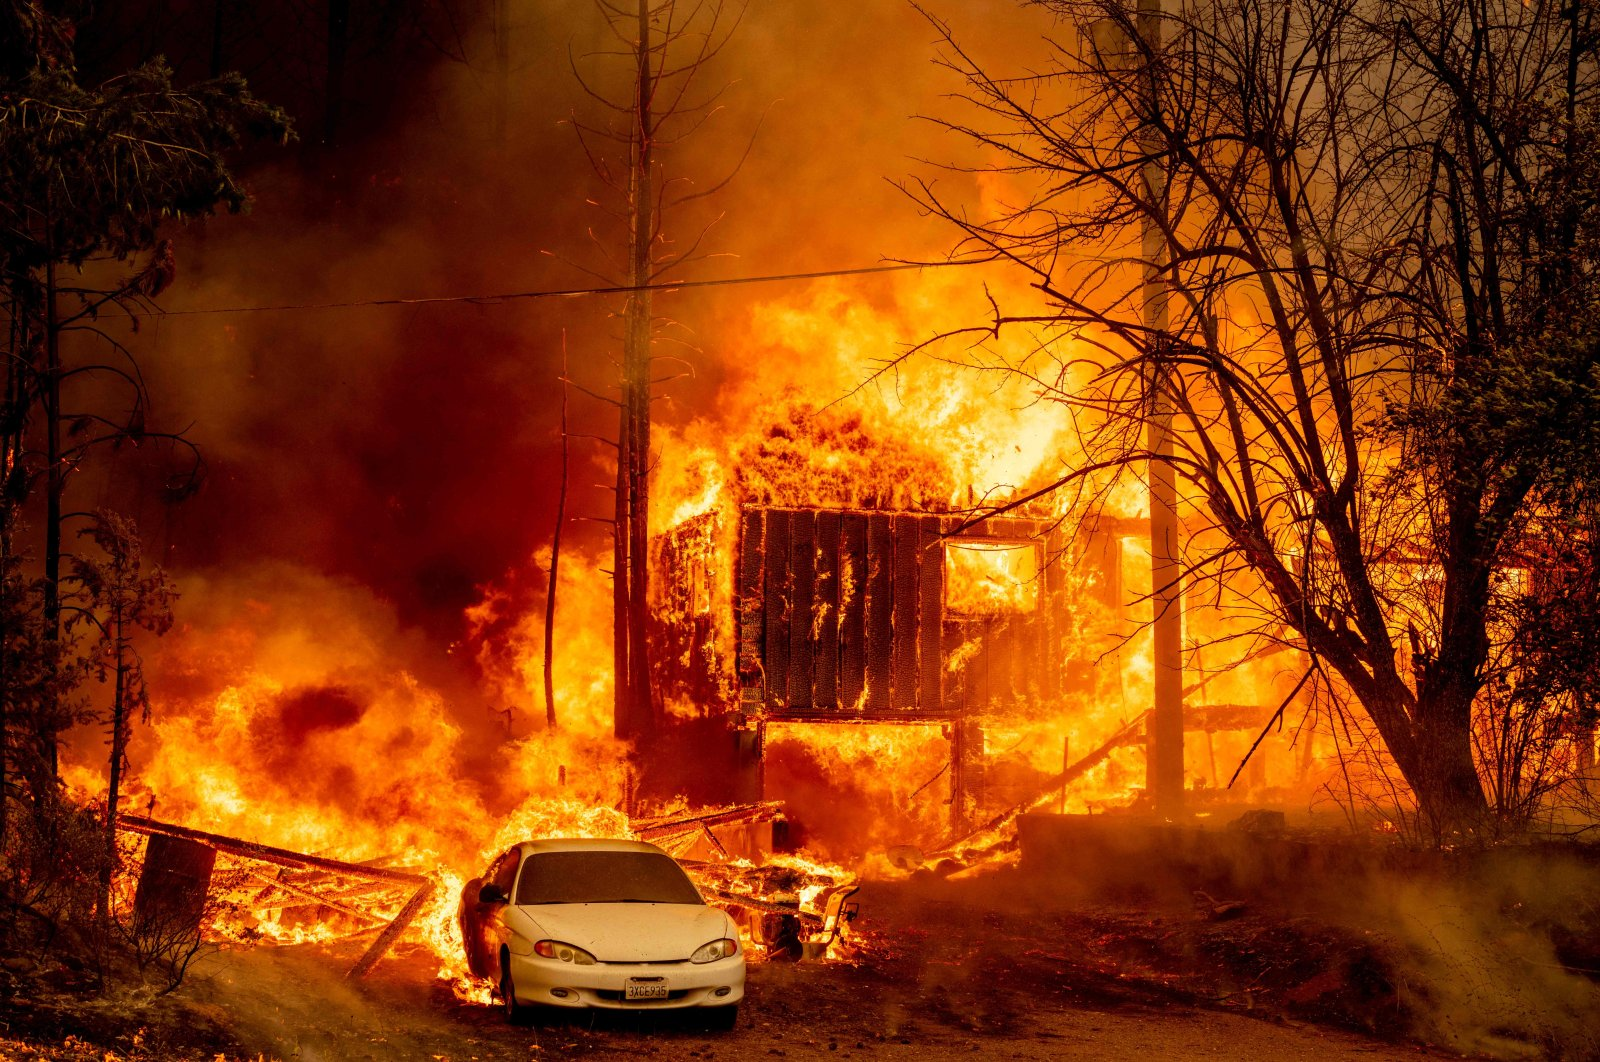 A home is engulfed in flames as the Dixie fire rages on in Greenville, California, U.S., Aug. 5, 2021. (AFP Photo)